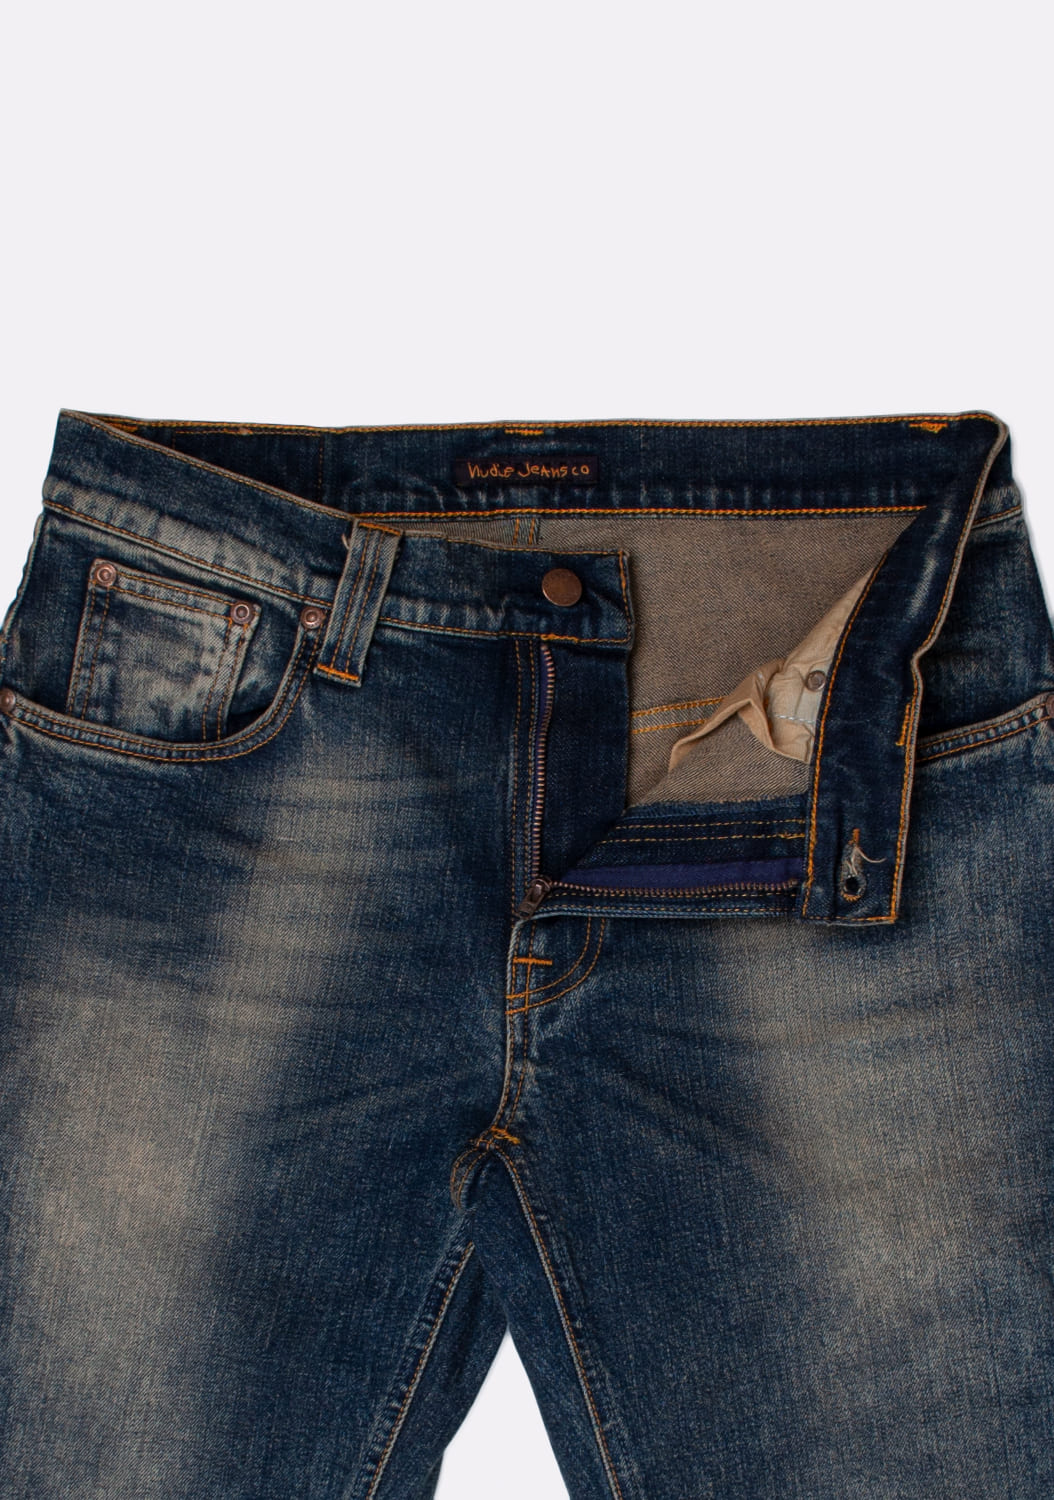 Nudie-Jeans-Thin-Finn-Org.-Heavy-Rust-dzinsai-dydis-31-30 (3)